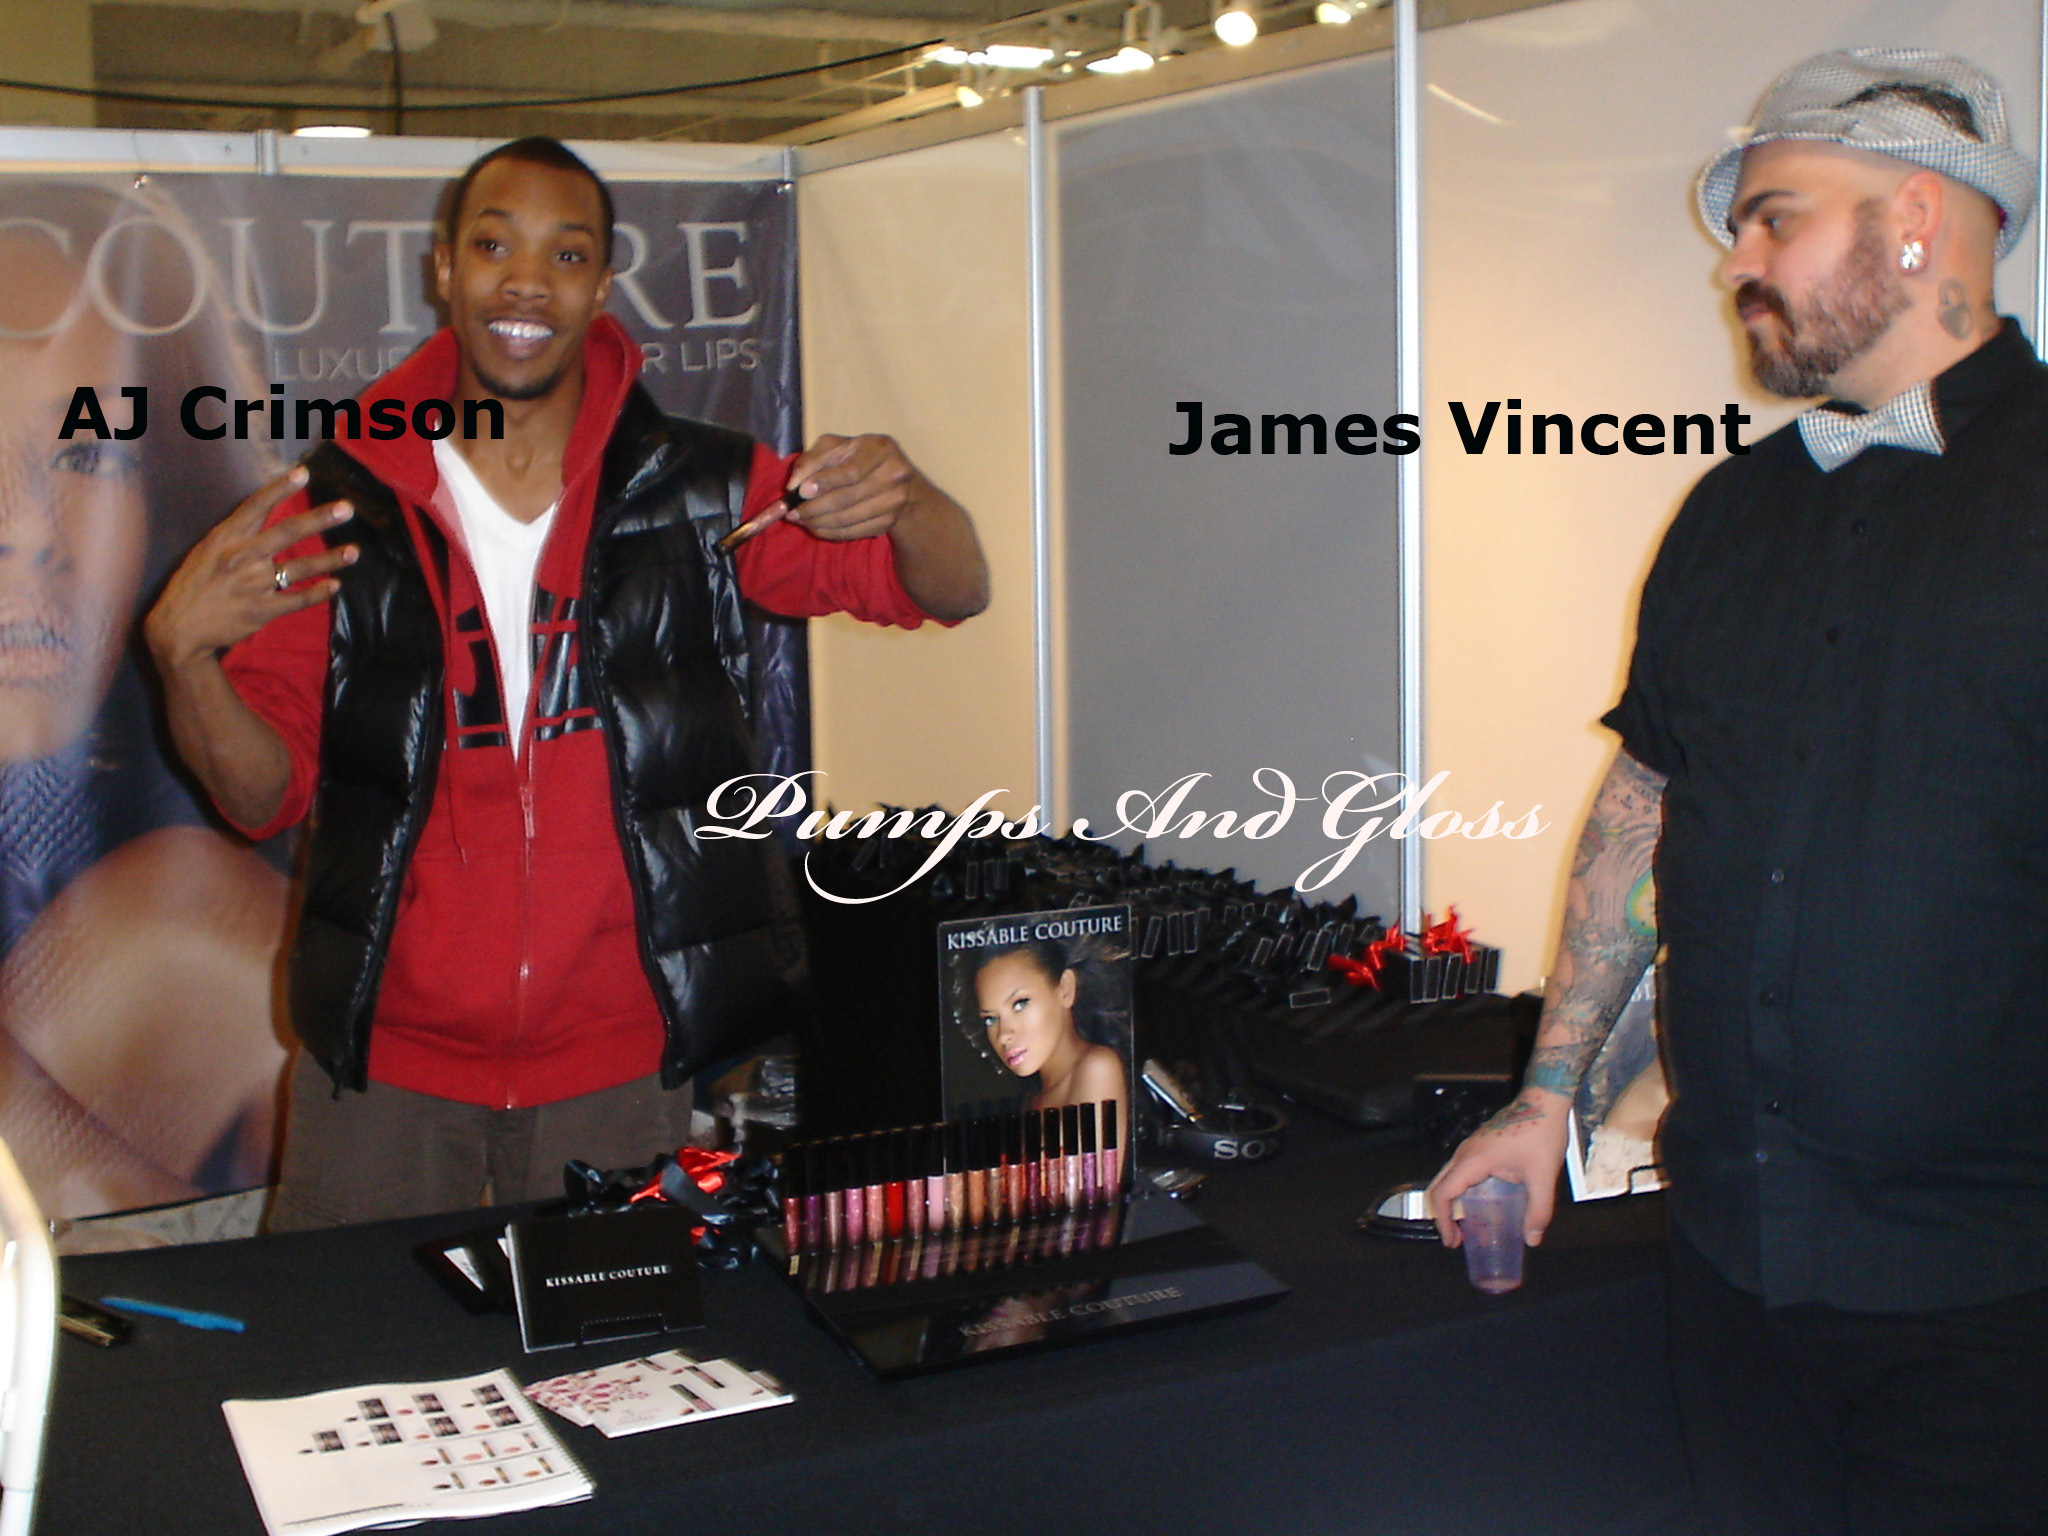 AJ Crimson discussing Kissable Couture's spring line as James Vincent looks on.